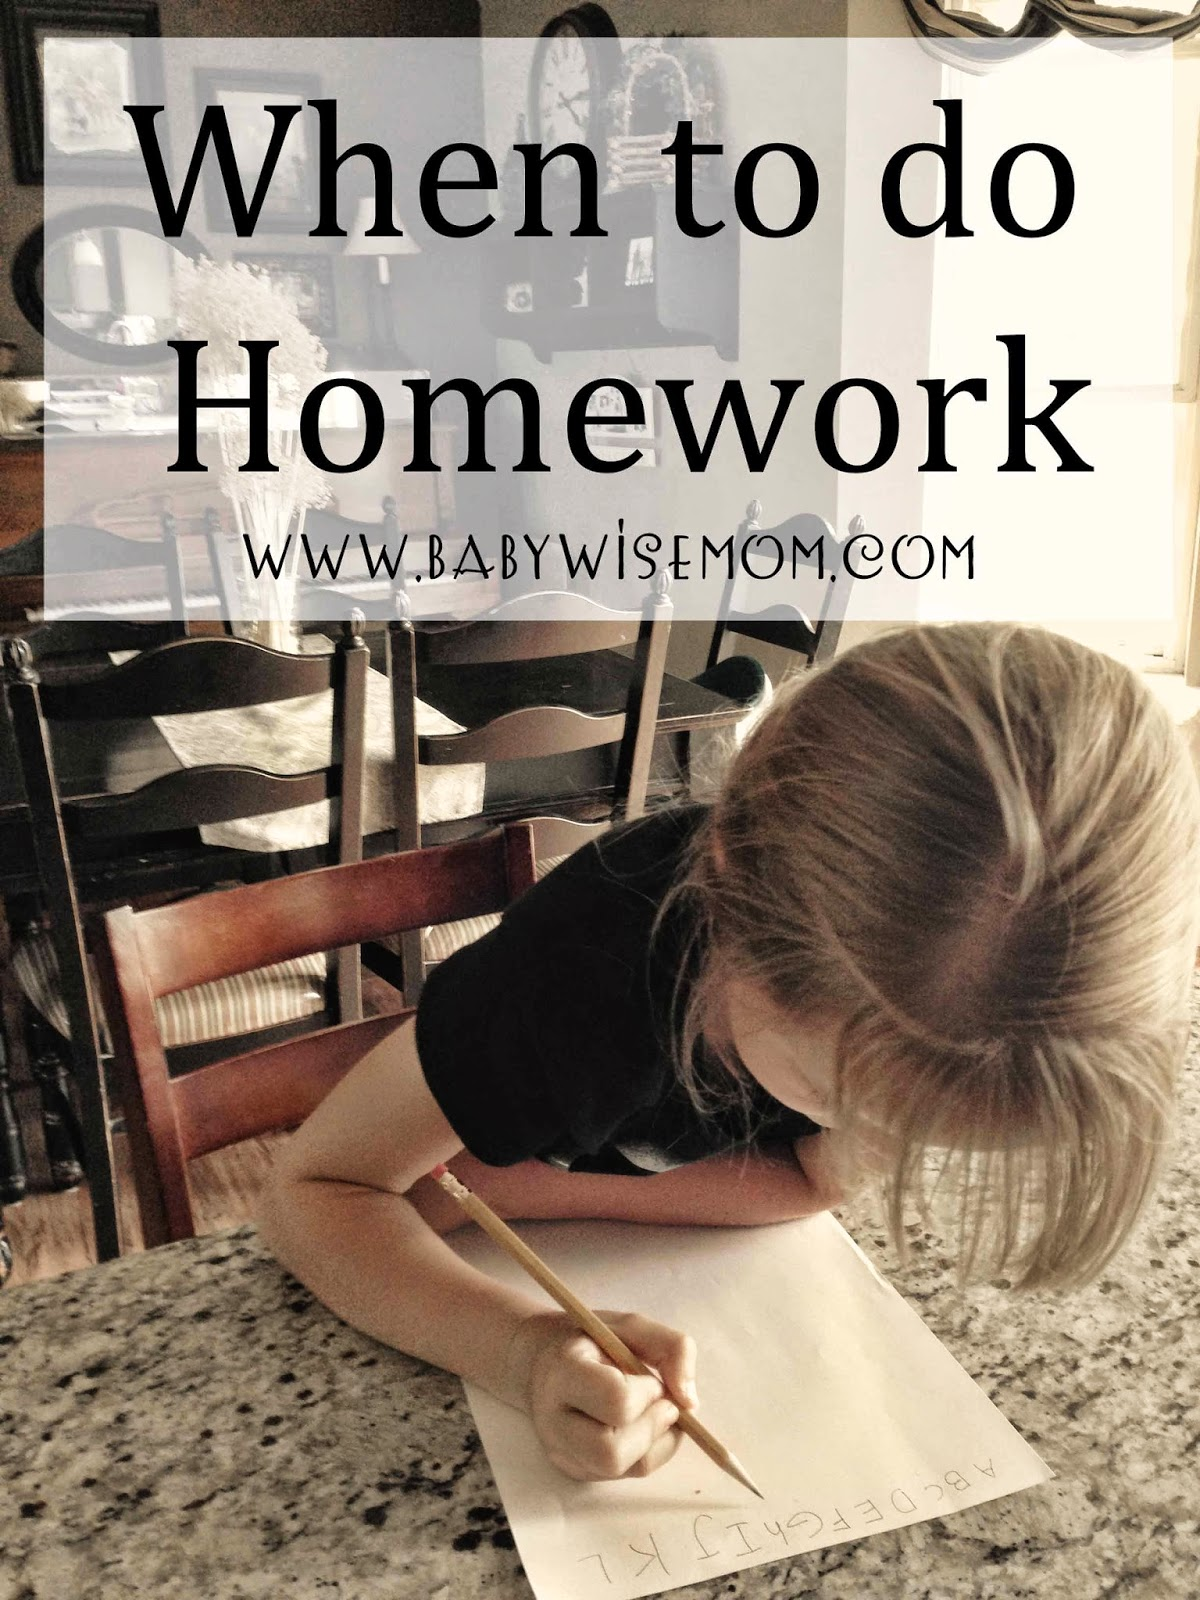 When to Do Homework?